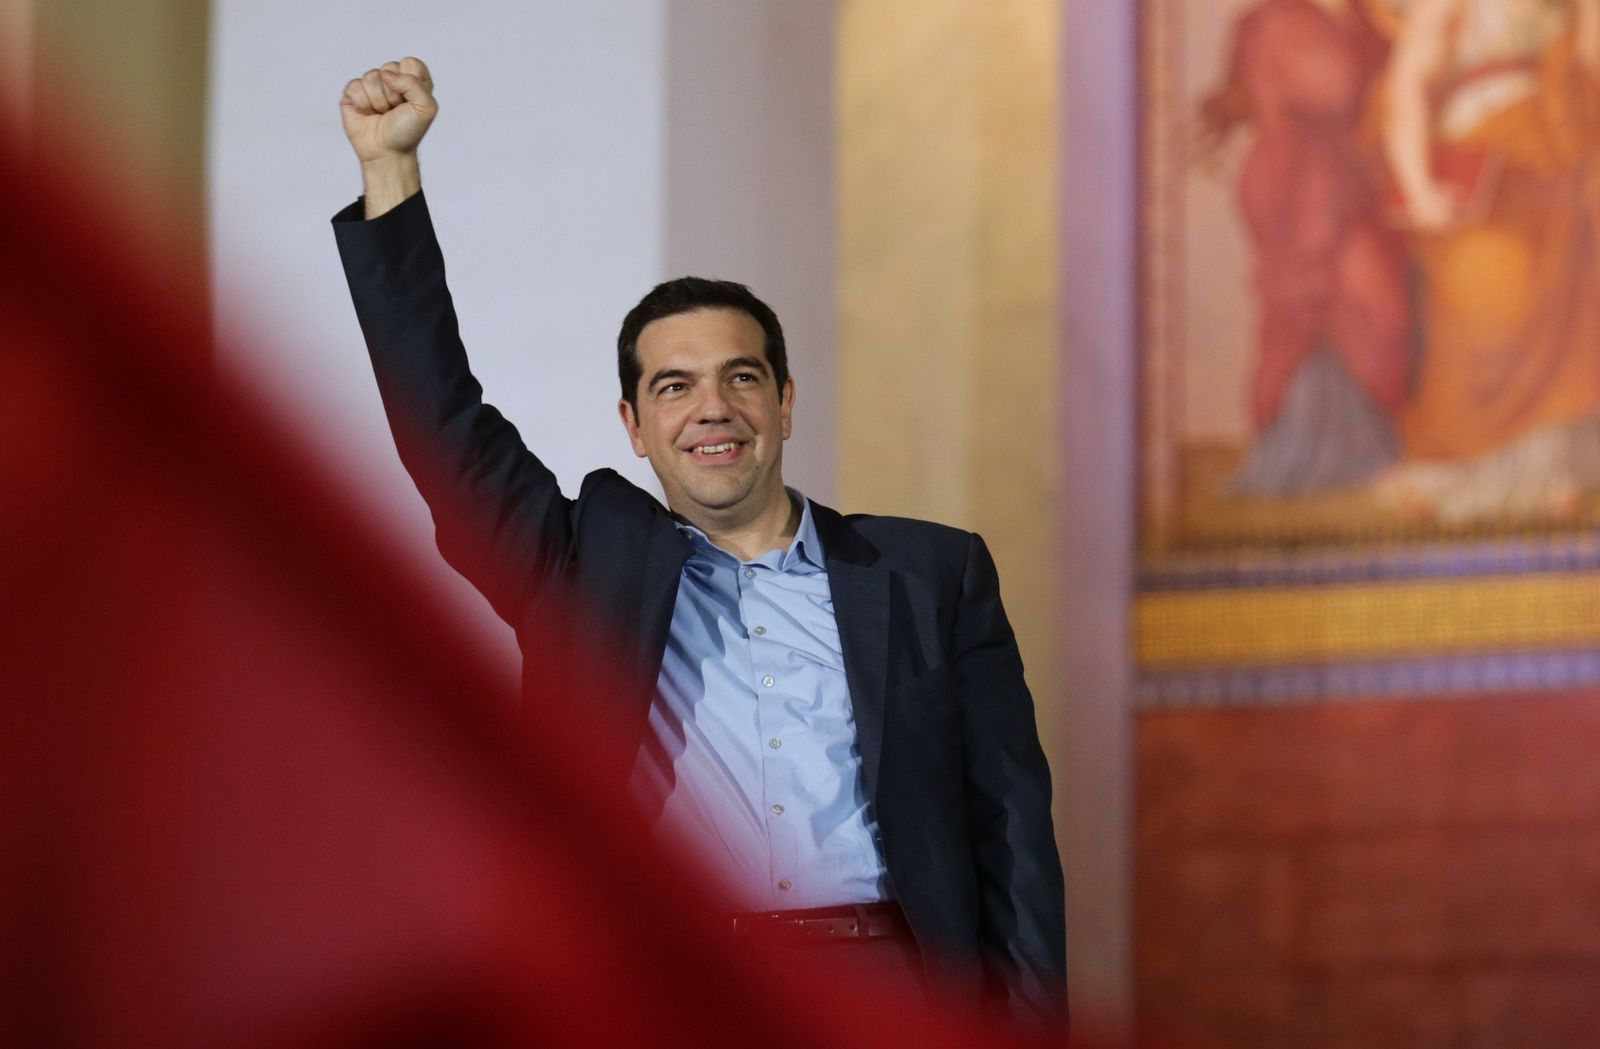 Greece 2015 elections